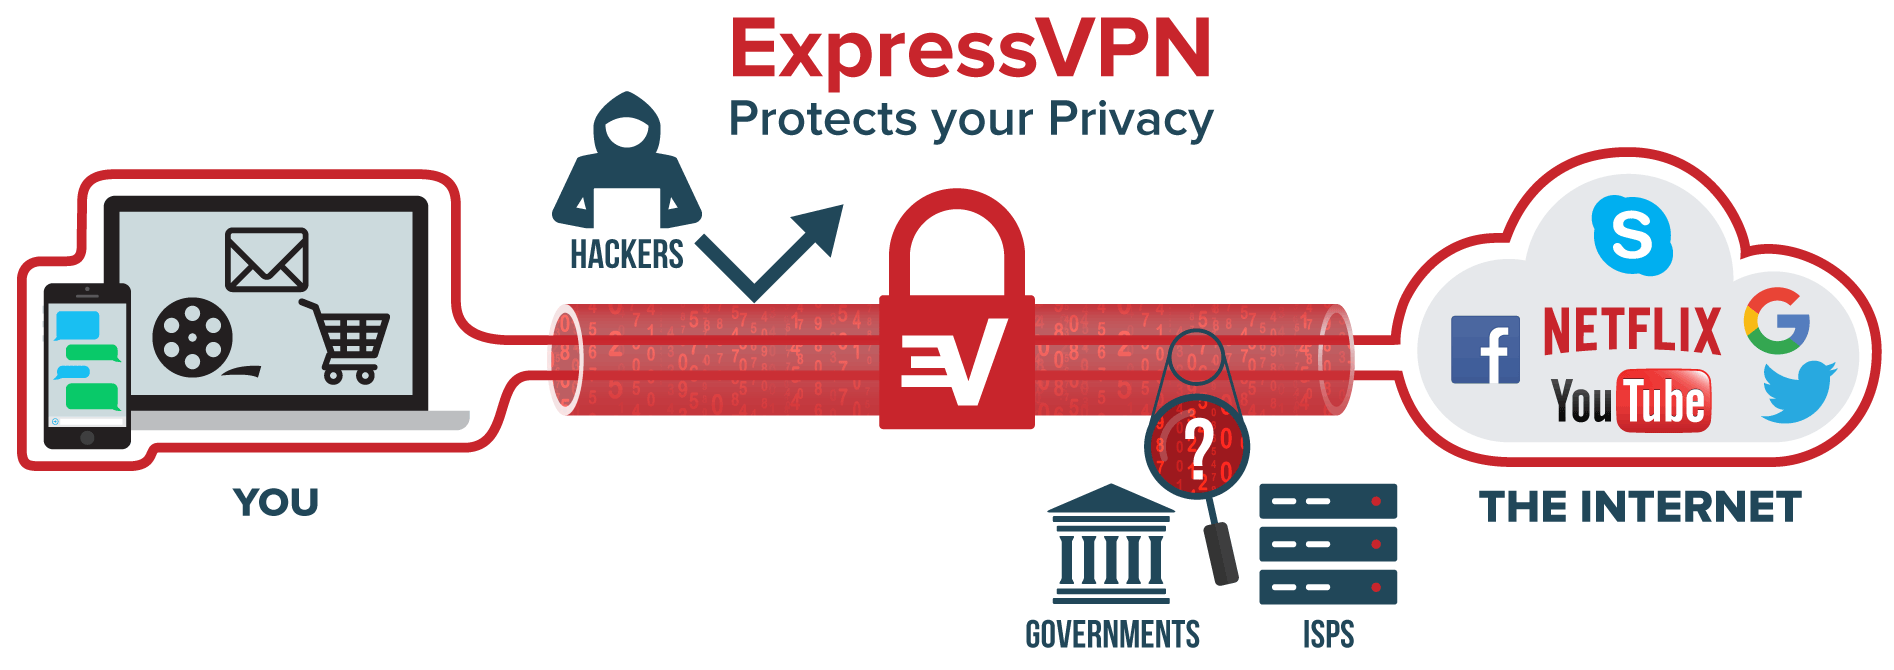 Is ExpressVPN Legal